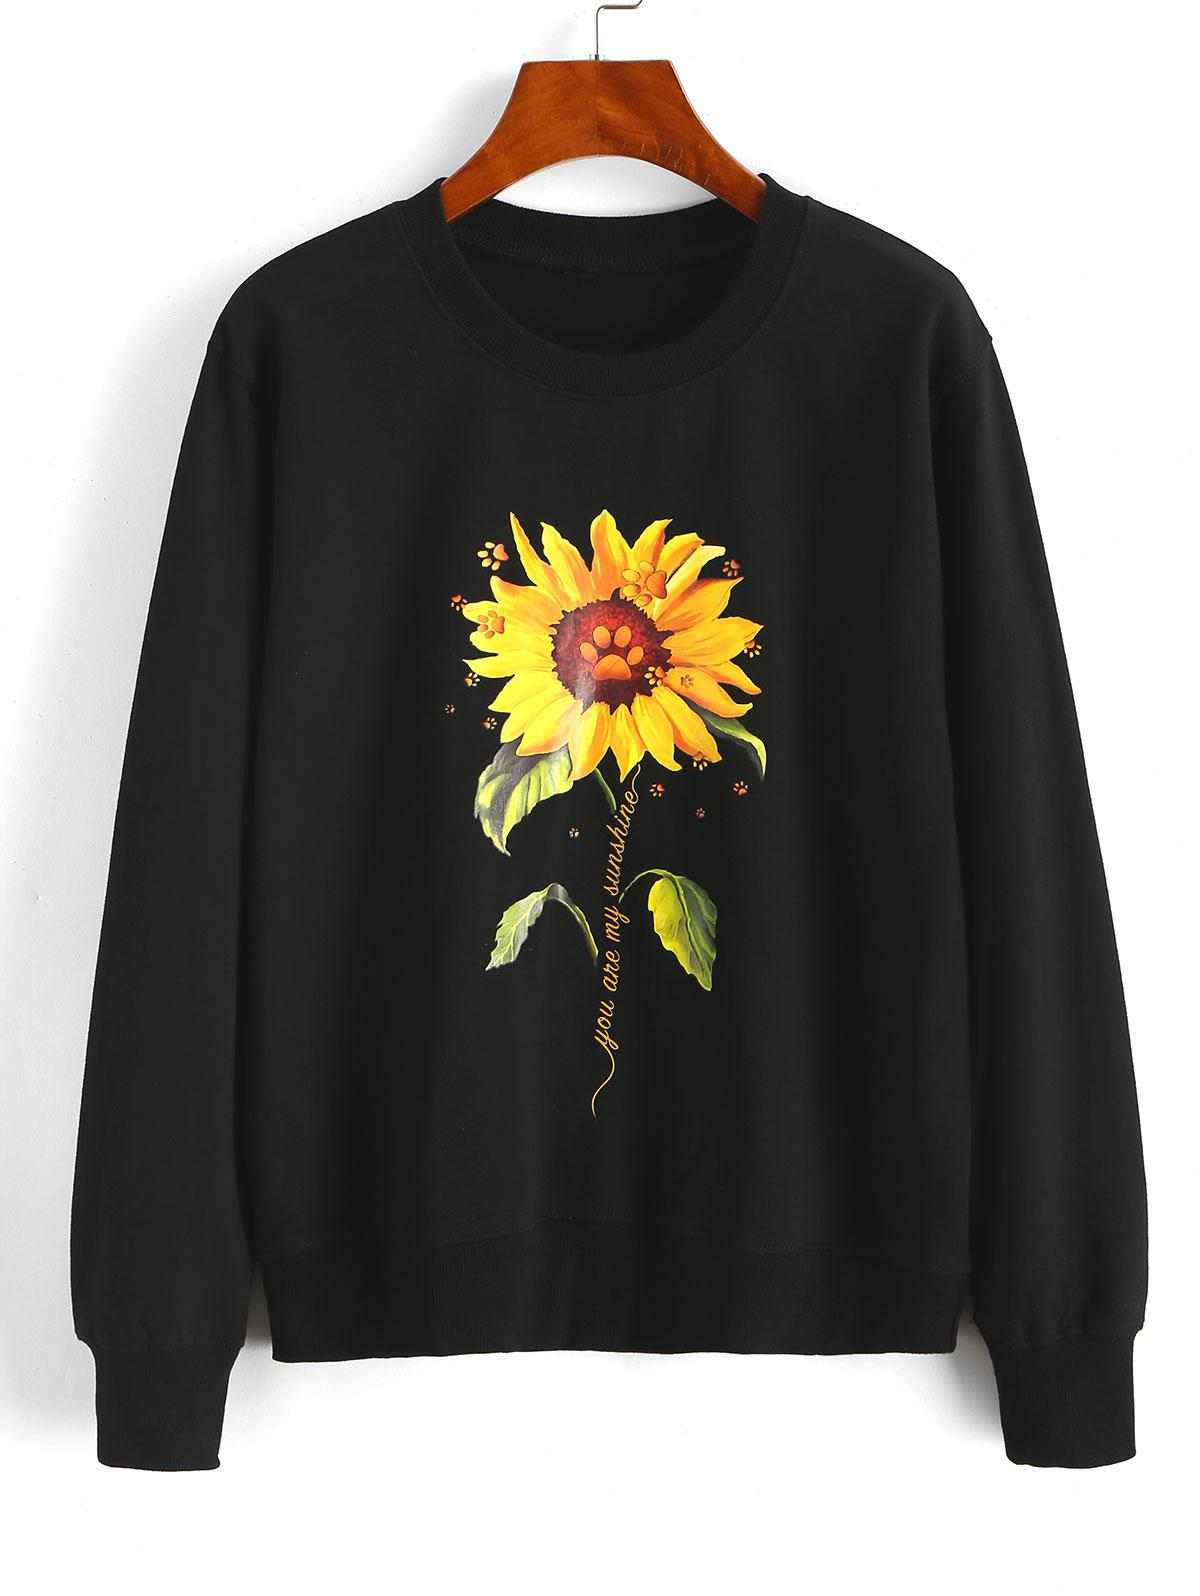 Sunflower Slogan Claw Print Pullover Sweatshirt